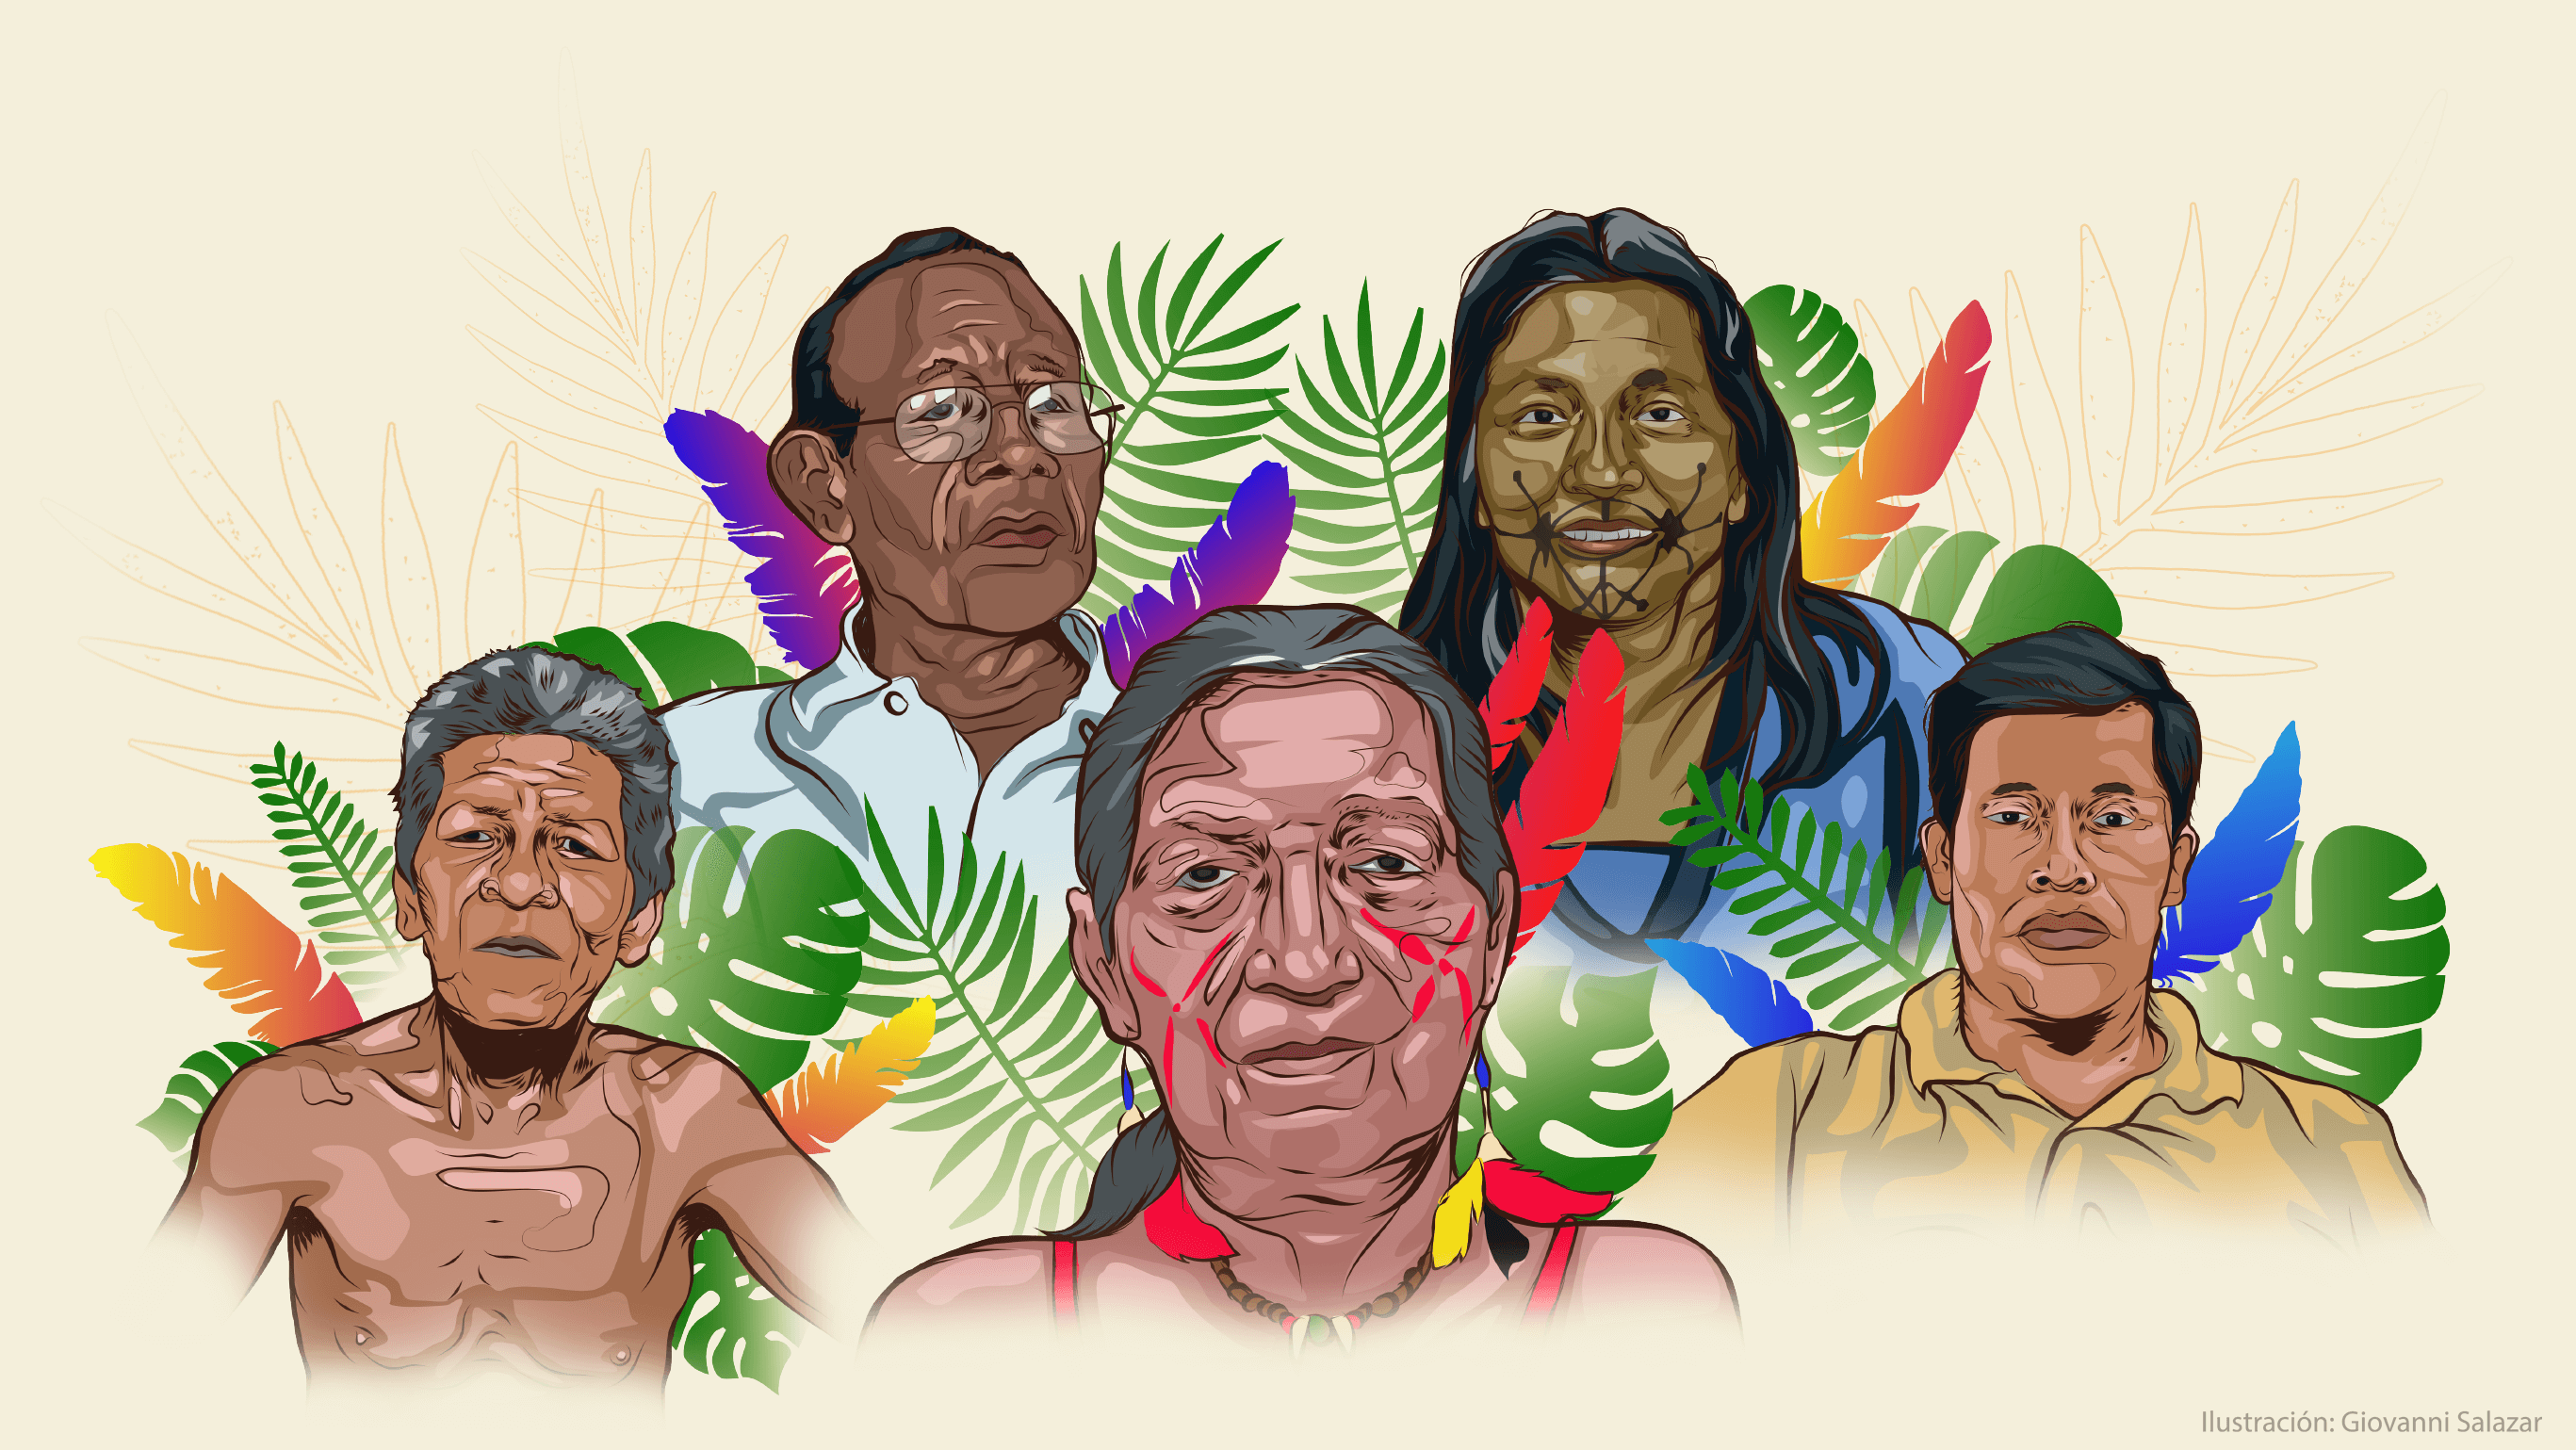 5 tips from knowledgeable indigenous leaders of the Amazon basin to tell stories